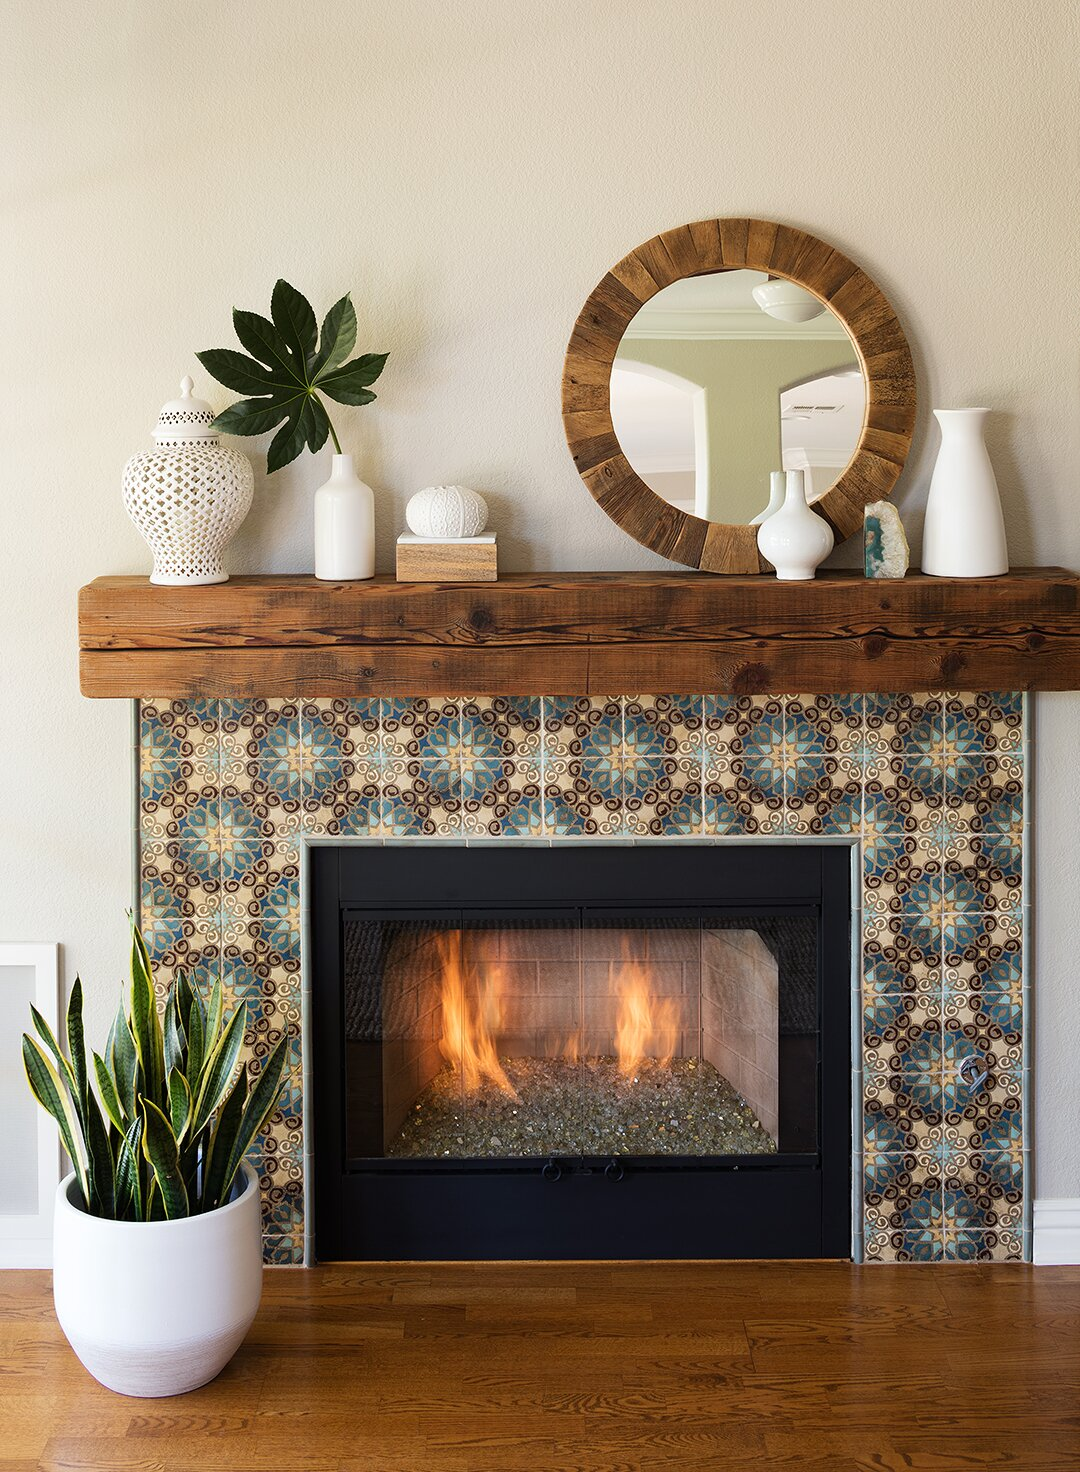 Fireplace Benches Fresh before and after Fireplace Makeovers